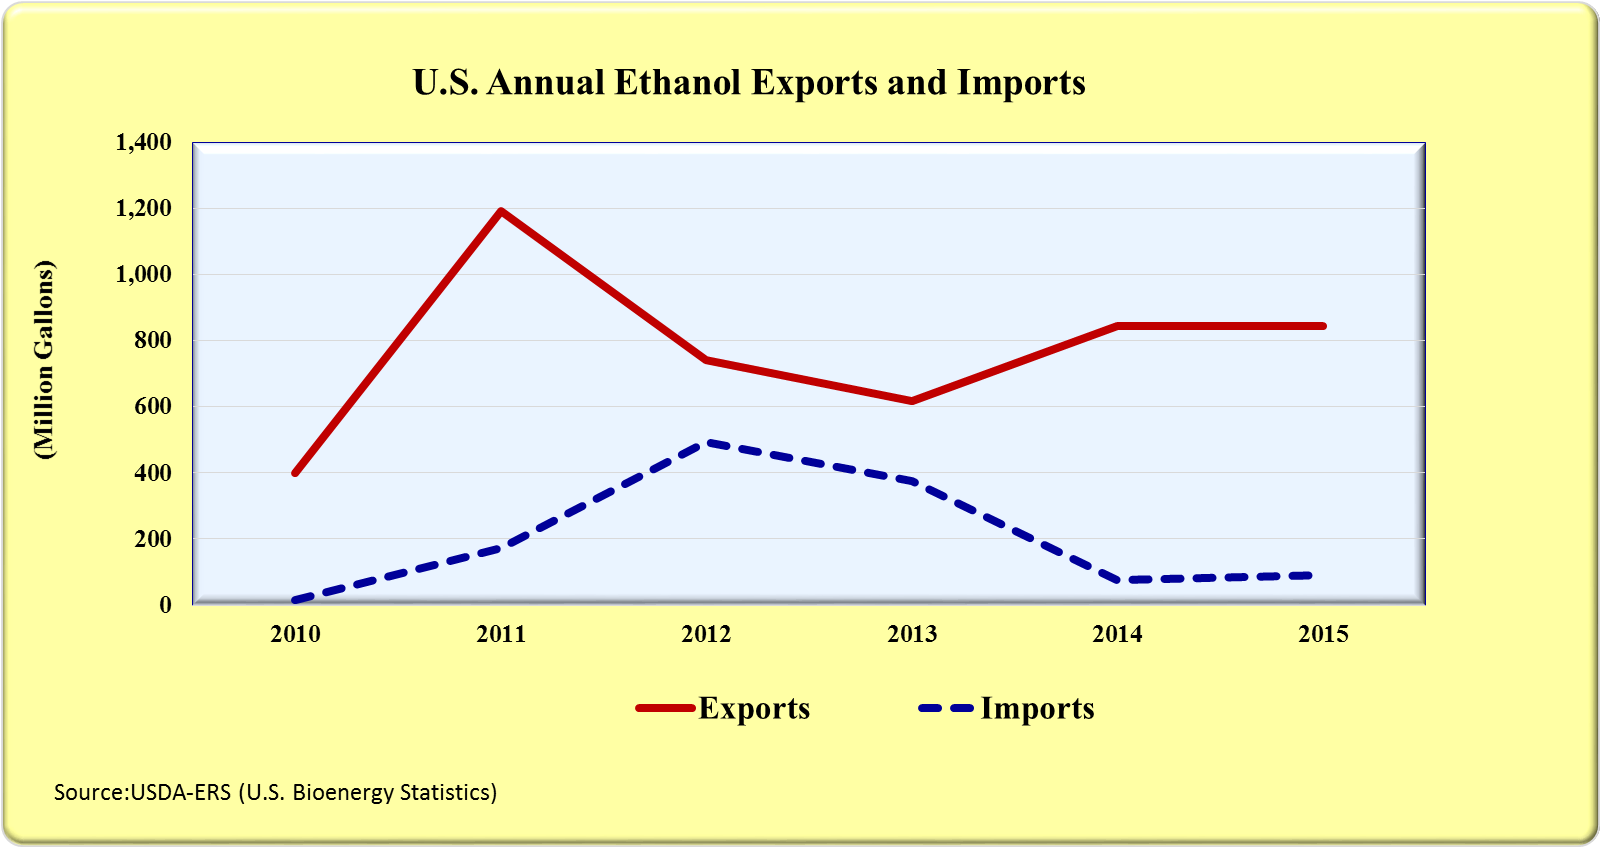 U.S. Annual Exports and Imports